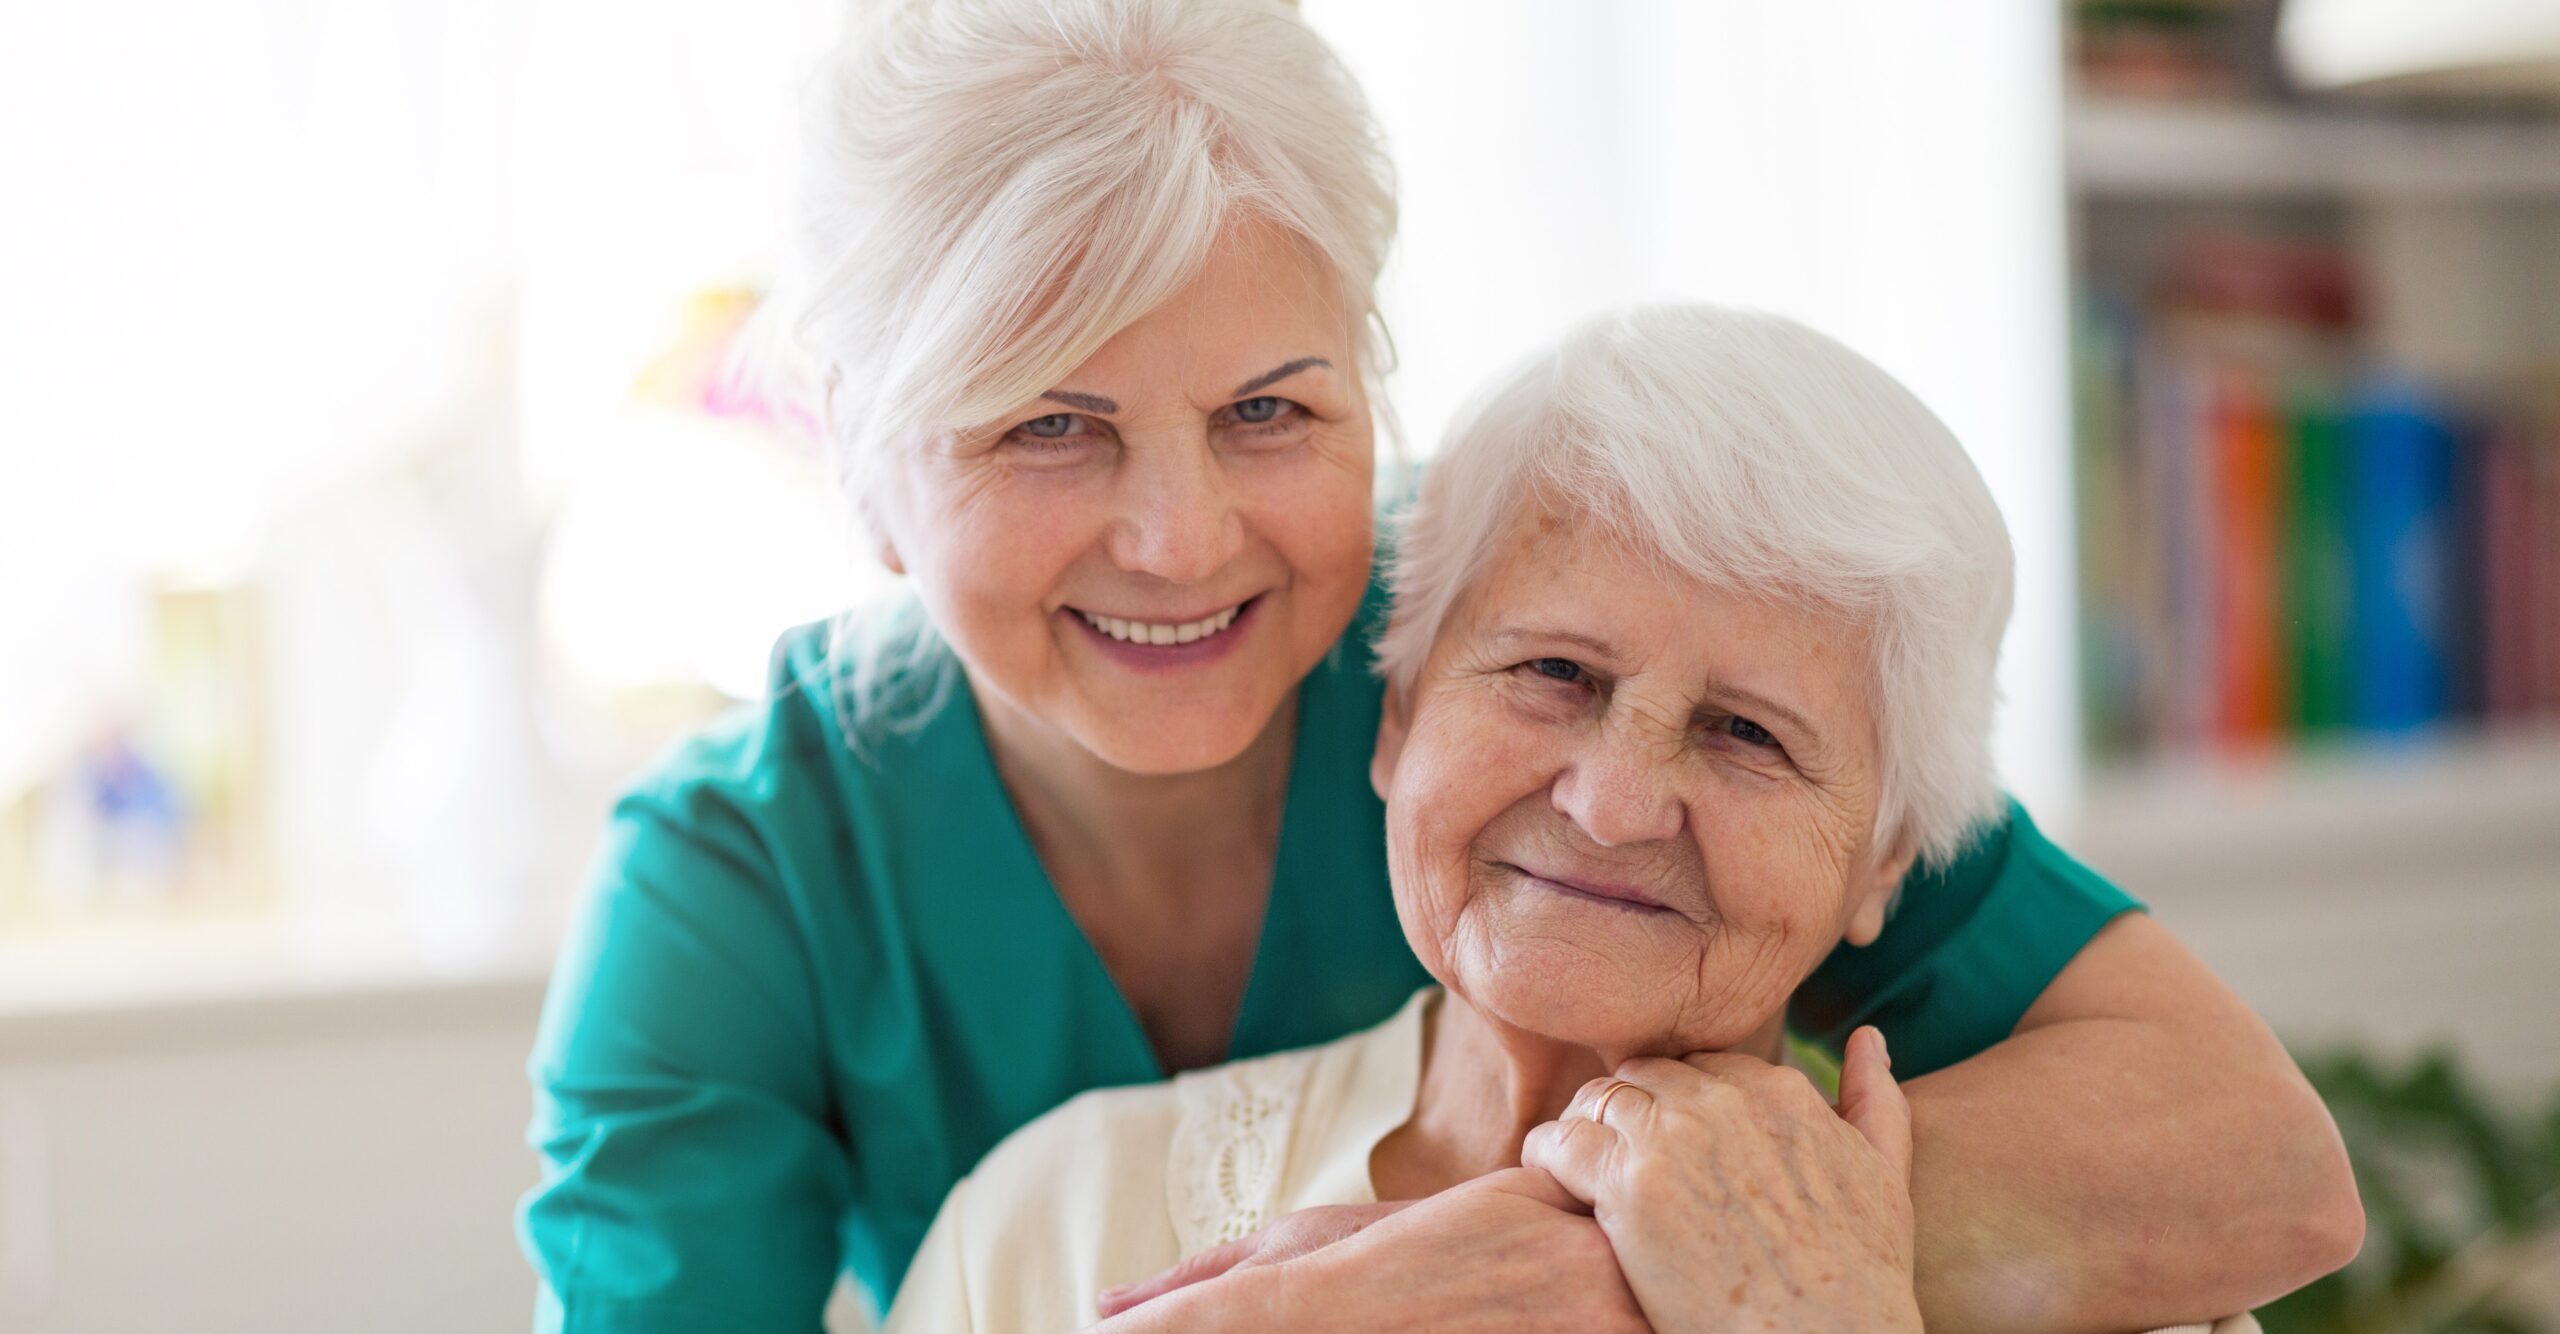 A picture of elderly mother and older daughter